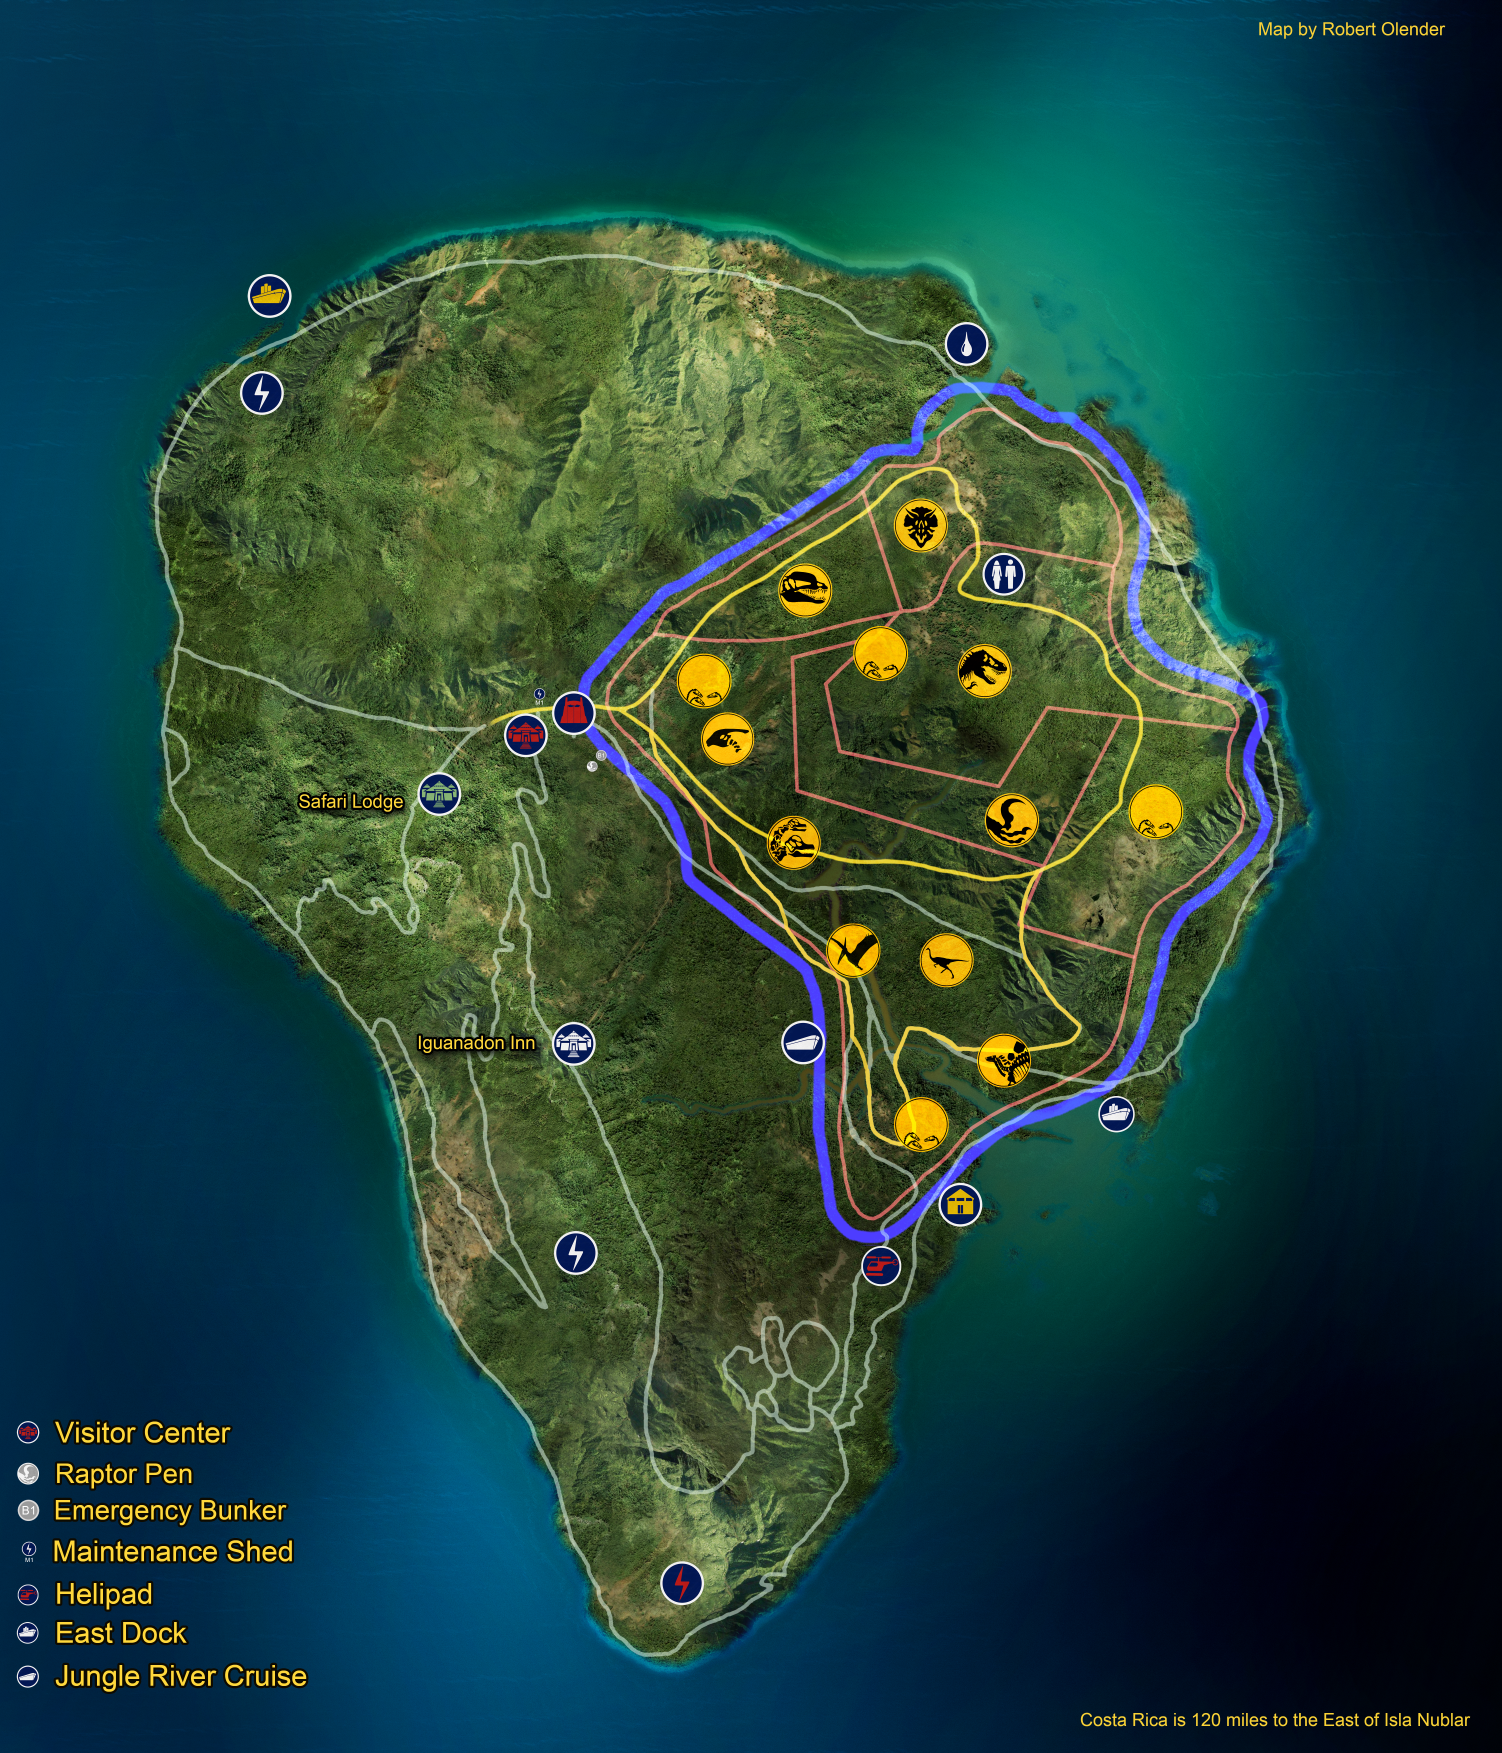 Fan made isla nublar map by fluxcreations on deviantart fan made isla nublar map by fluxcreations gumiabroncs Choice Image